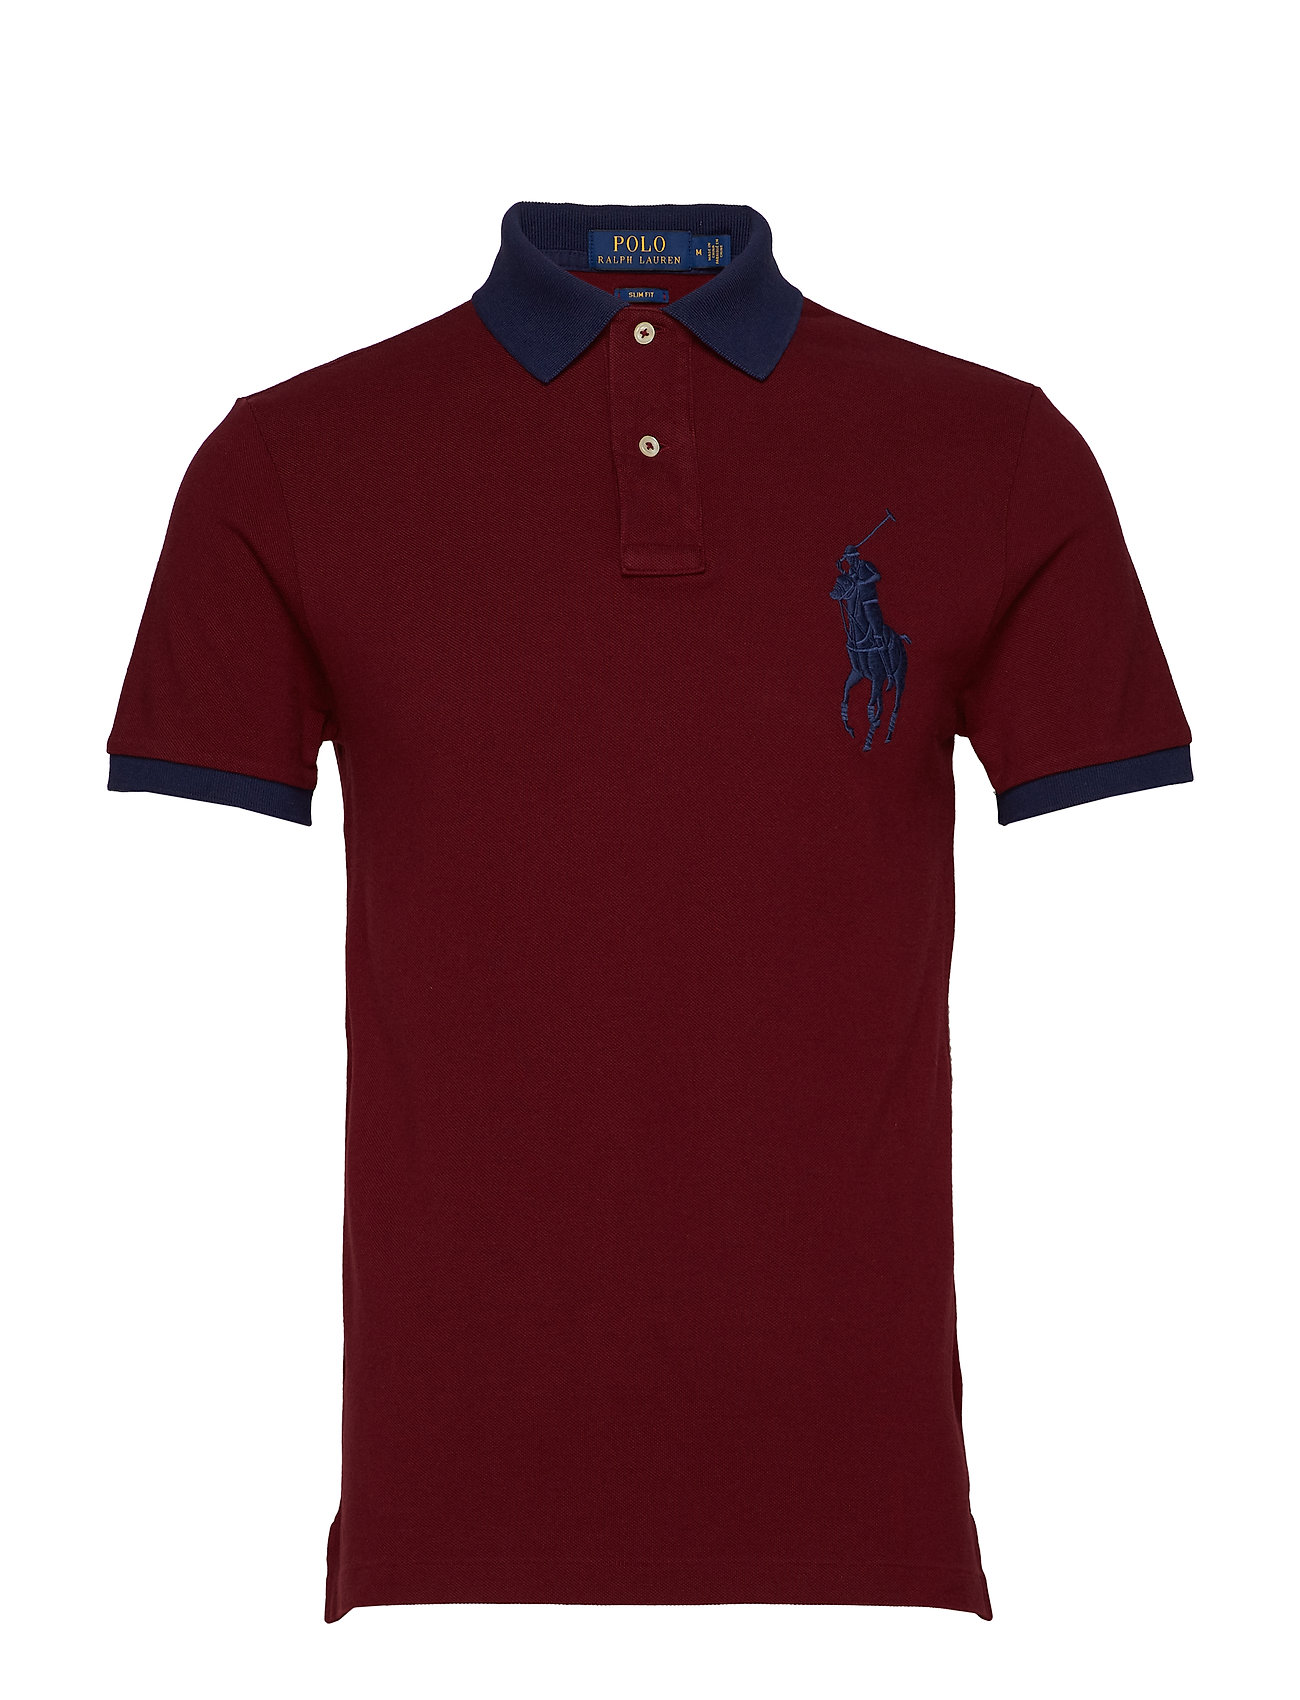 Polo Ralph Lauren Slim-Fit Big Pony Polo Shirt - CLASSIC WINE